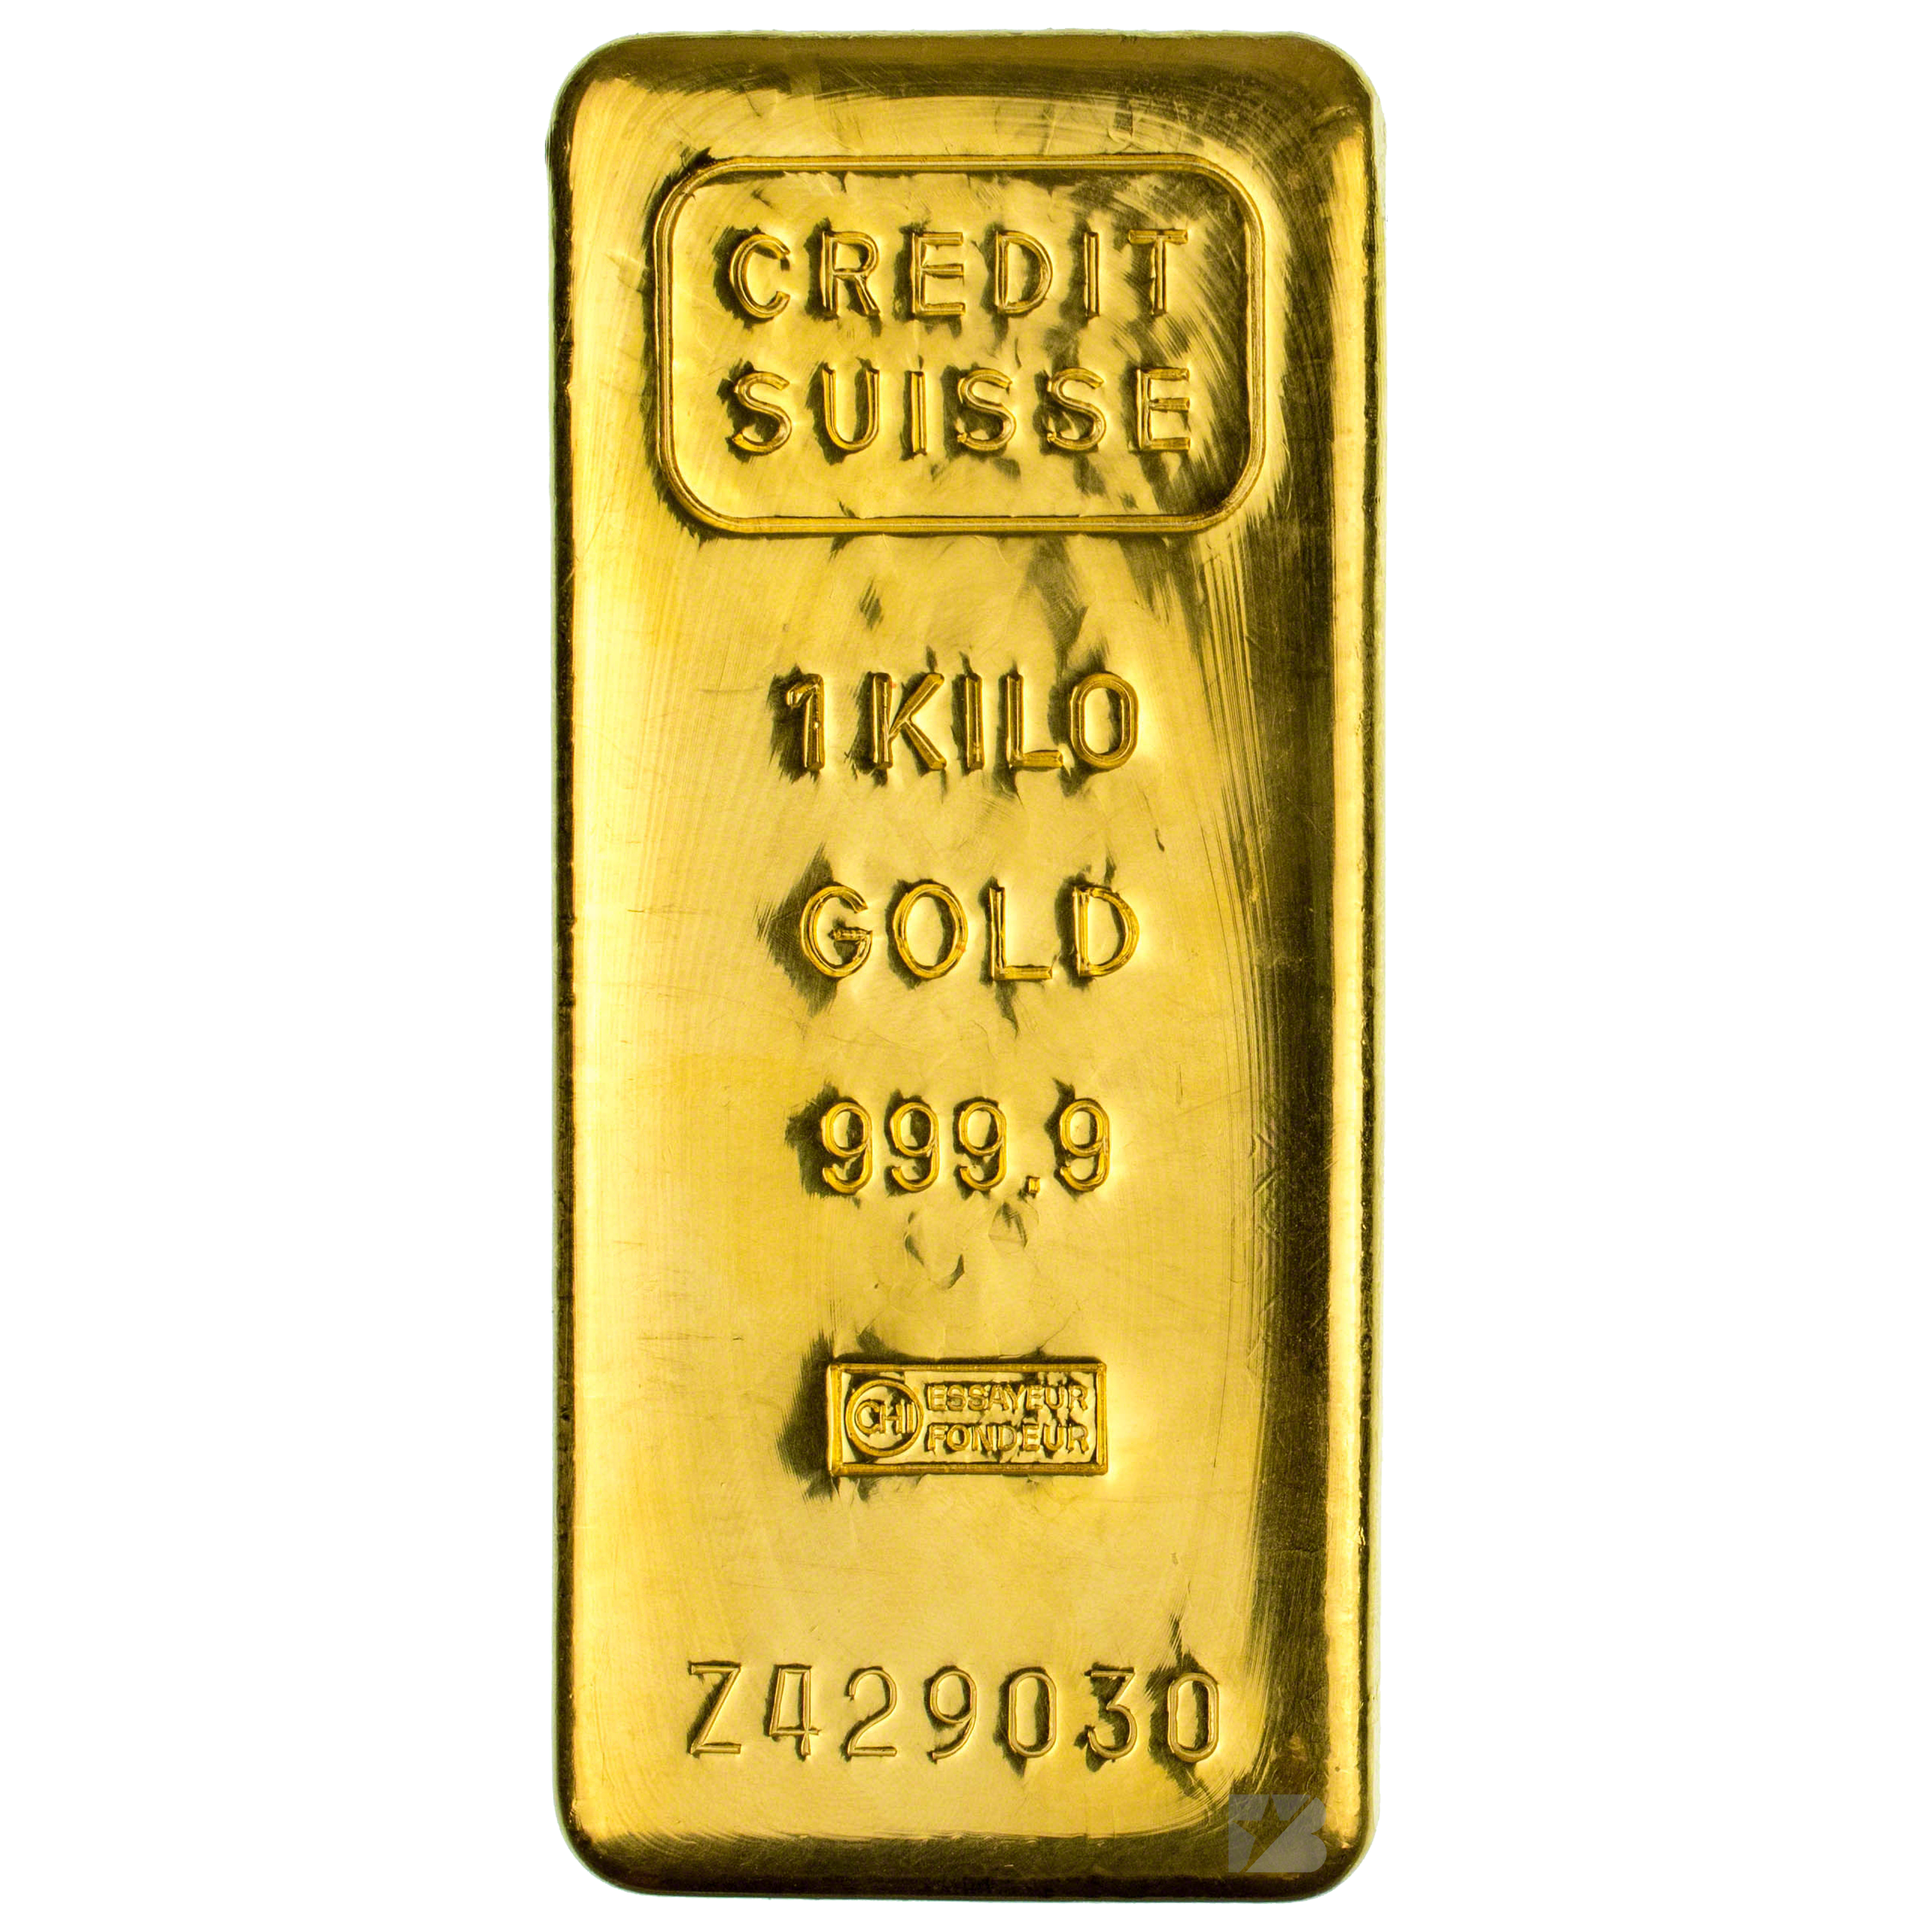 Credit Suisse Gold Bar 1 Kg